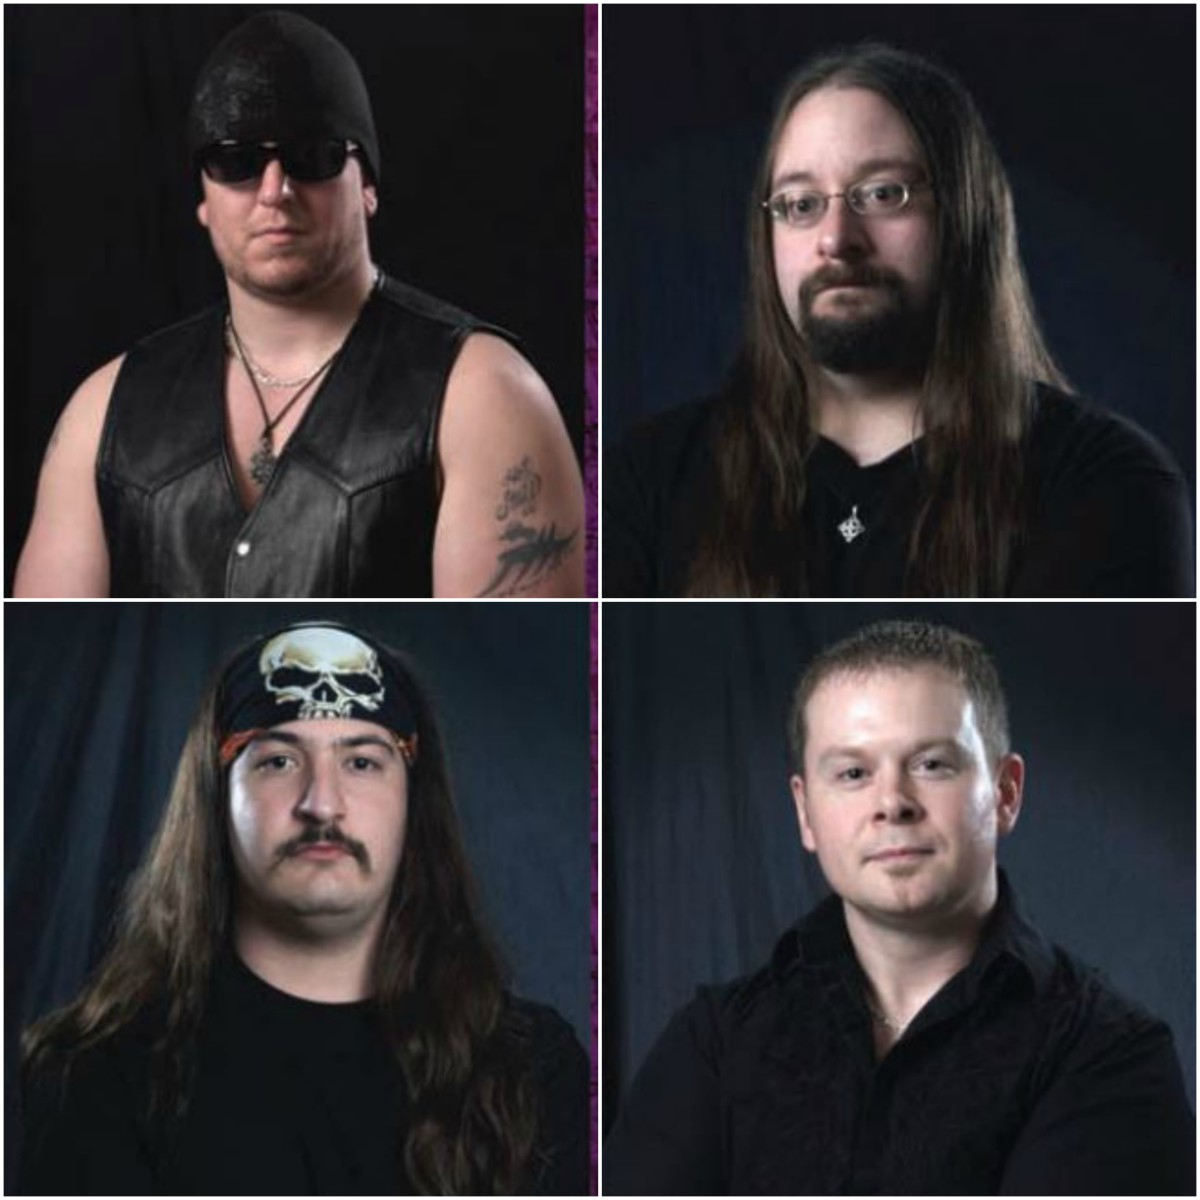 Top L-R: Joel Wood (vocals), Chuck Donahue (bass) Bottom L-R: John Jesuele (drums), Mike Johnson (guitar)